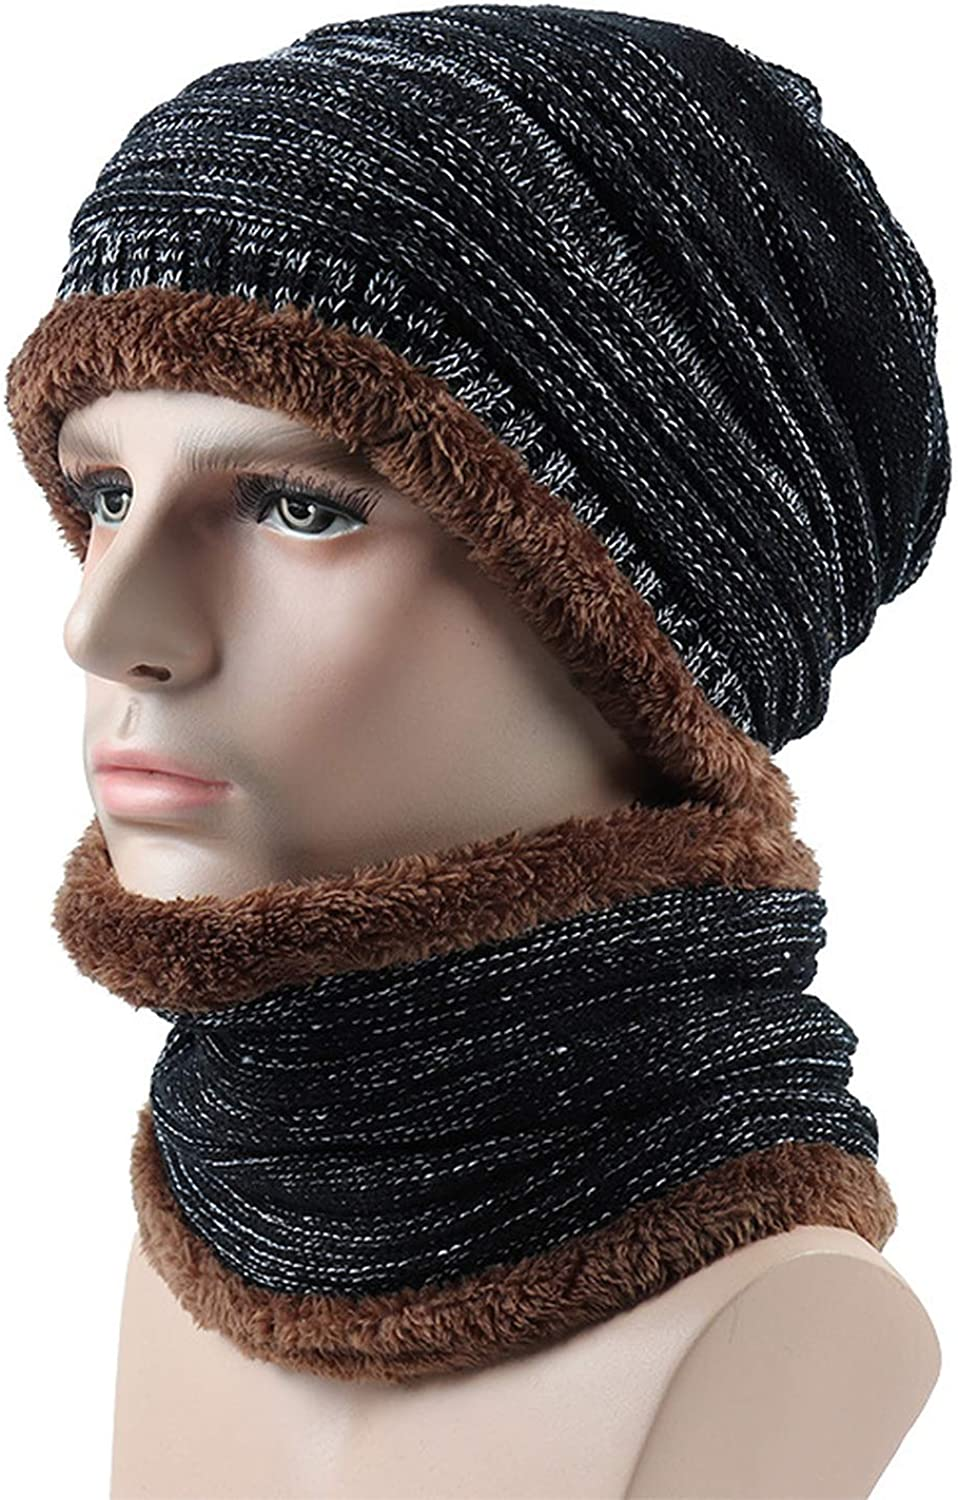 Winter Knitted Hat Scarf Caps Neck Warm Winter Hats Gorras Bonnet Mask Skullies Beanies Warm Fleece Cap